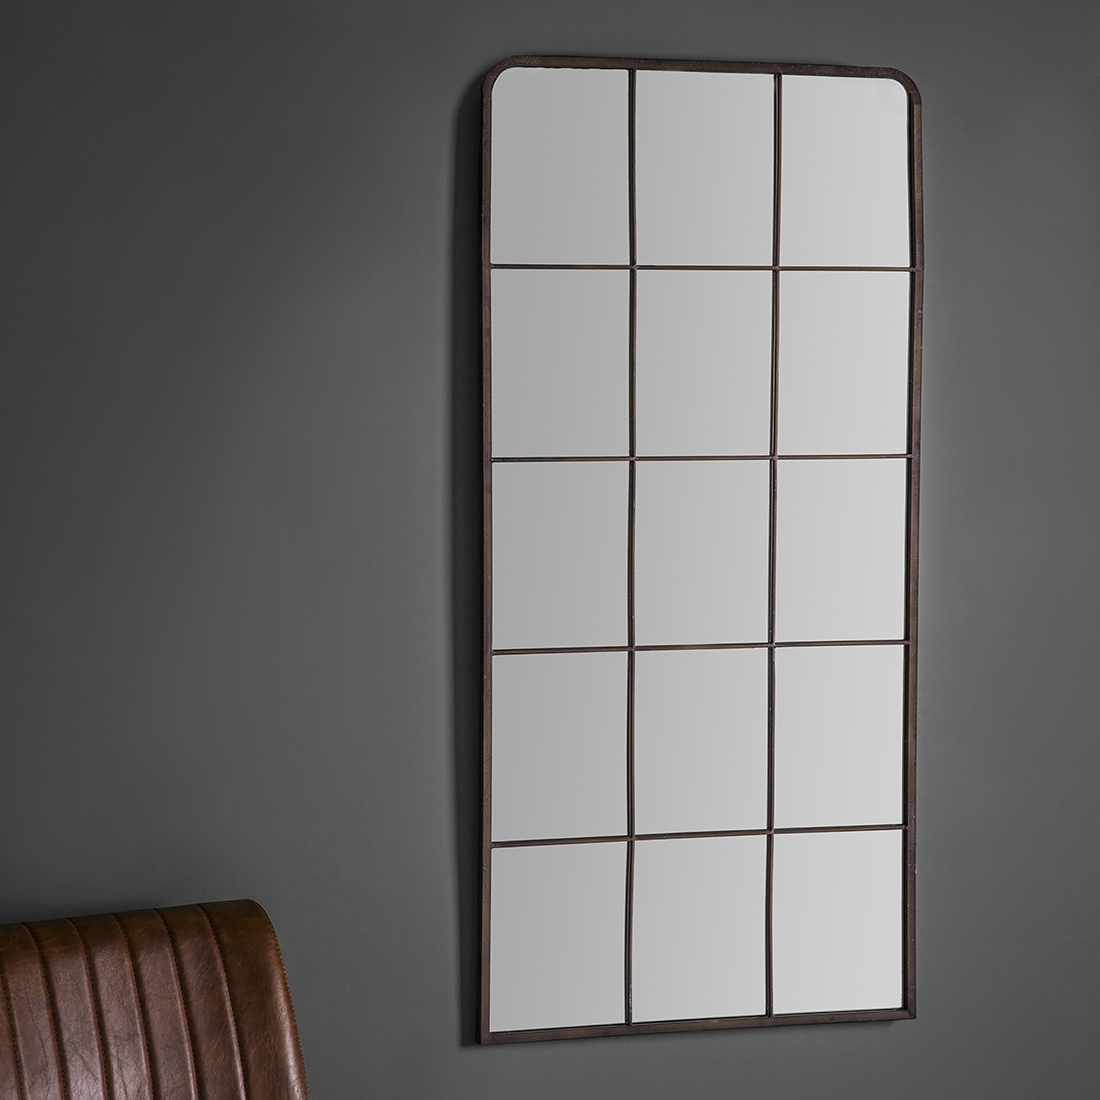 Most Recent Rectangular Industrial Metal Wall Mirror With Tall Wall Mirrors (View 6 of 20)